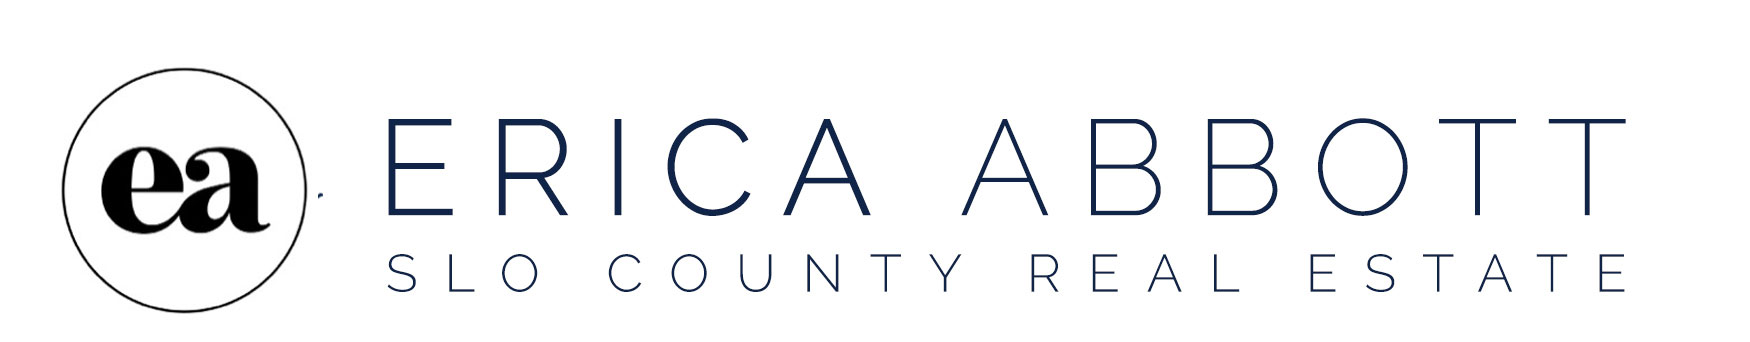 Erica Abbott Central Coast Real Estate